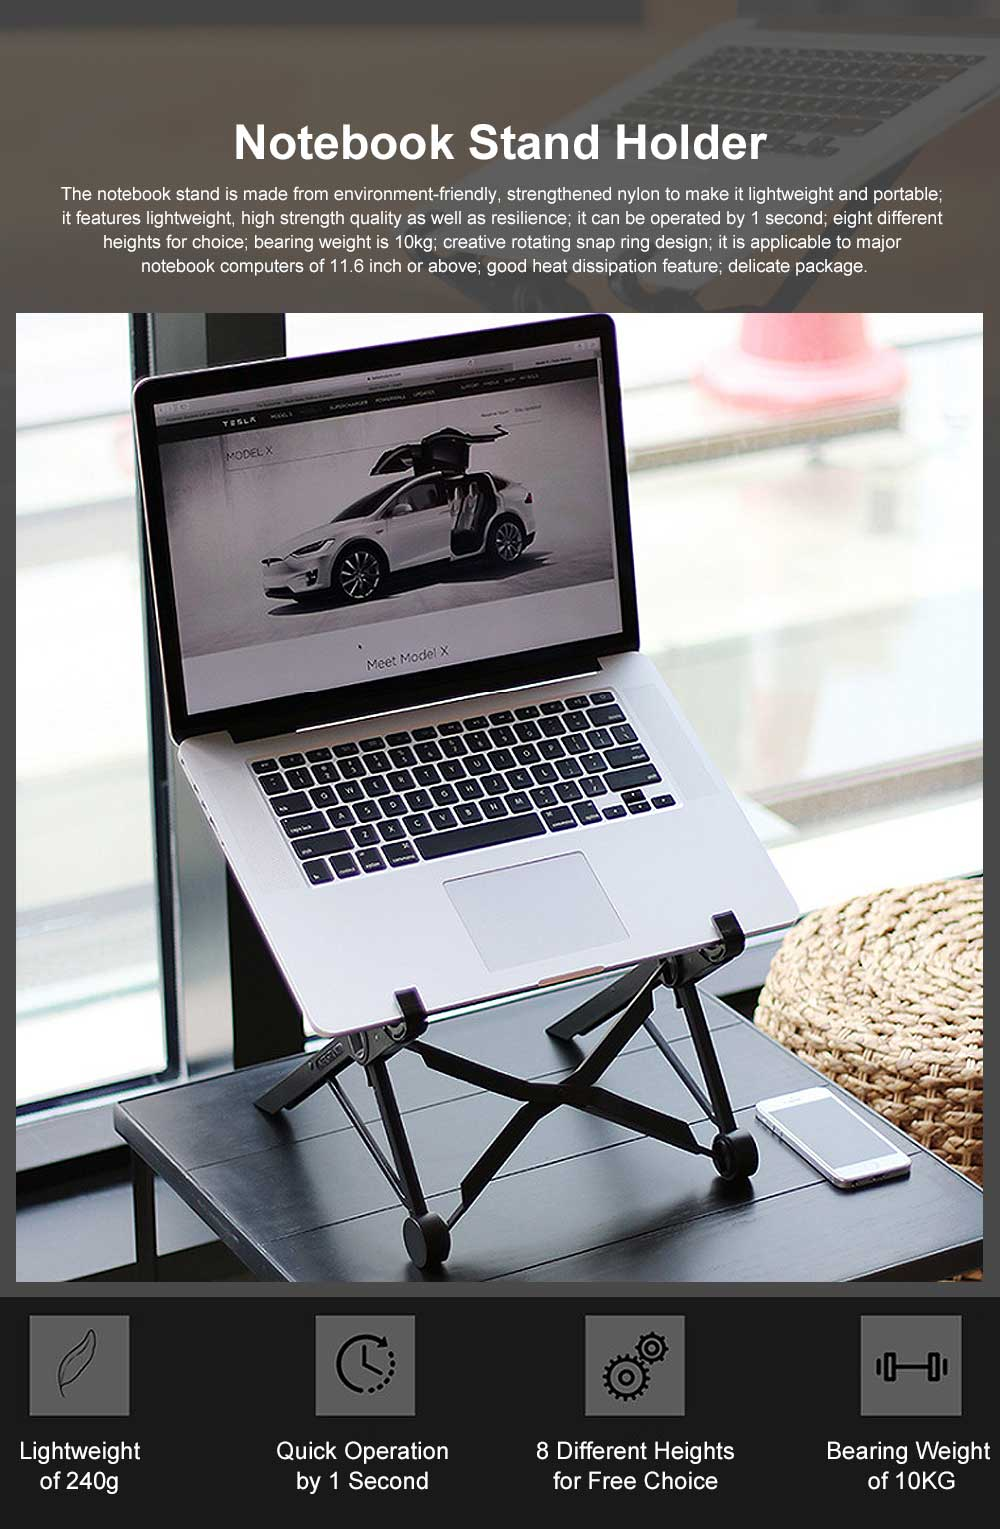 Foldable Supporting Stand for Laptop Computer, Lightweight Portable Notebook Holder, Liftable Cervical Vertebra Protective Support 0